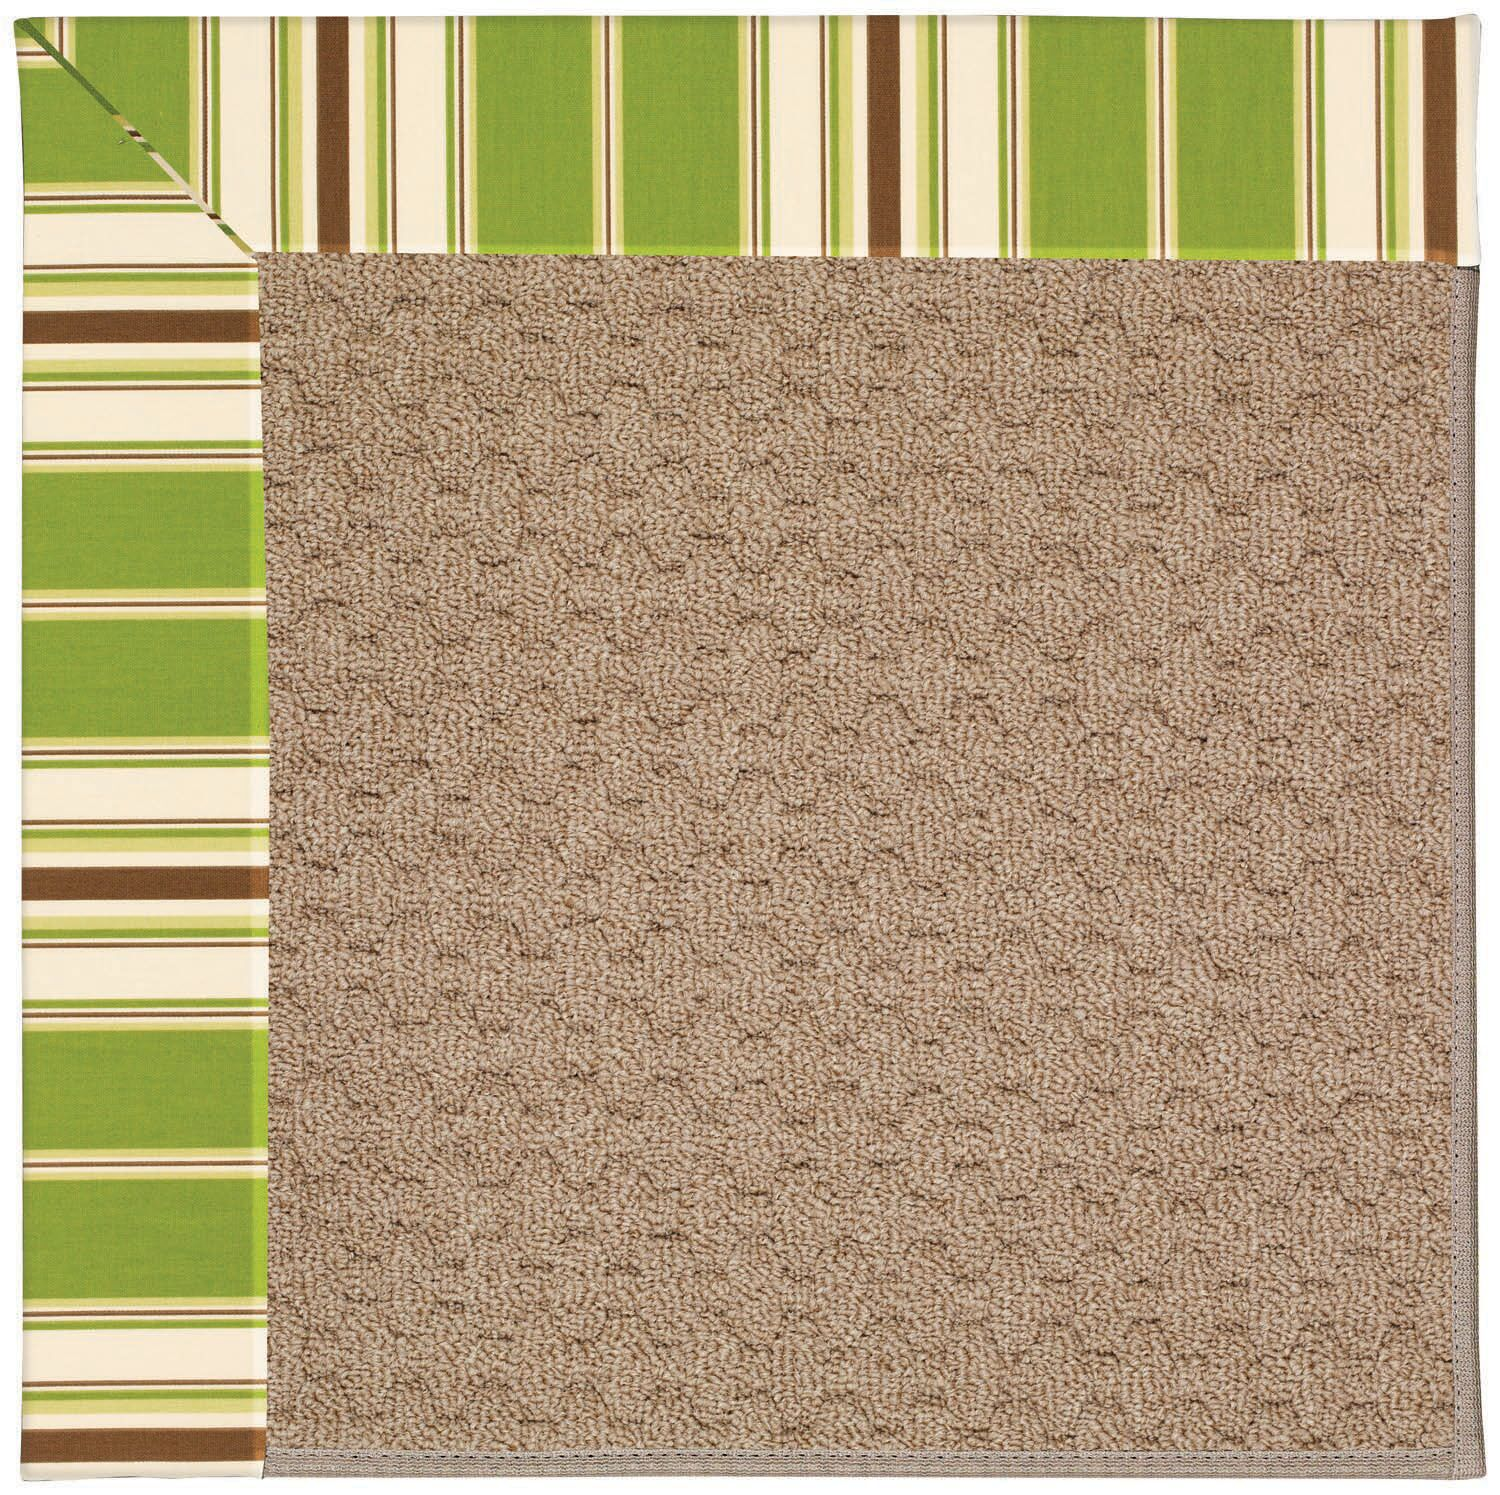 Lisle Machine Tufted Green/Brown Indoor/Outdoor Area Rug Rug Size: Rectangle 10' x 14'